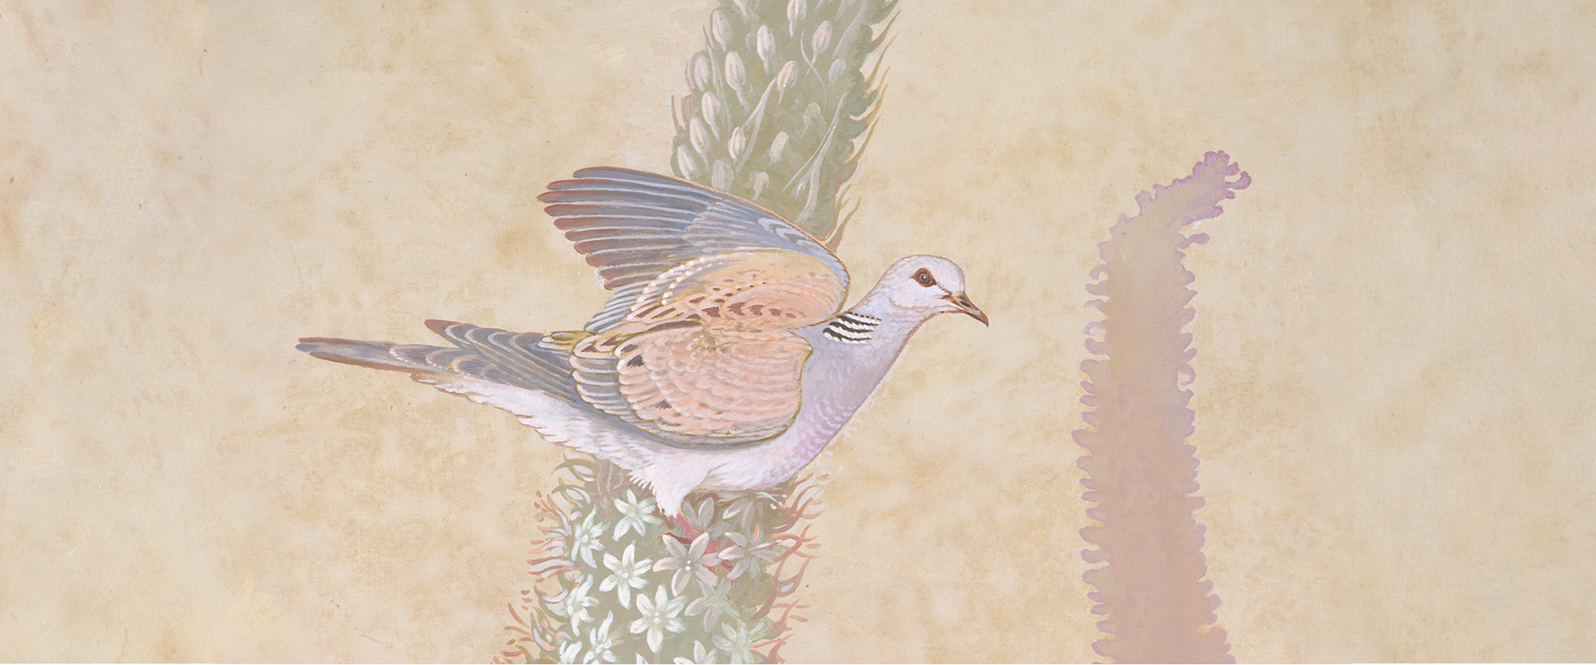 Malta Turtledove Agave Slider